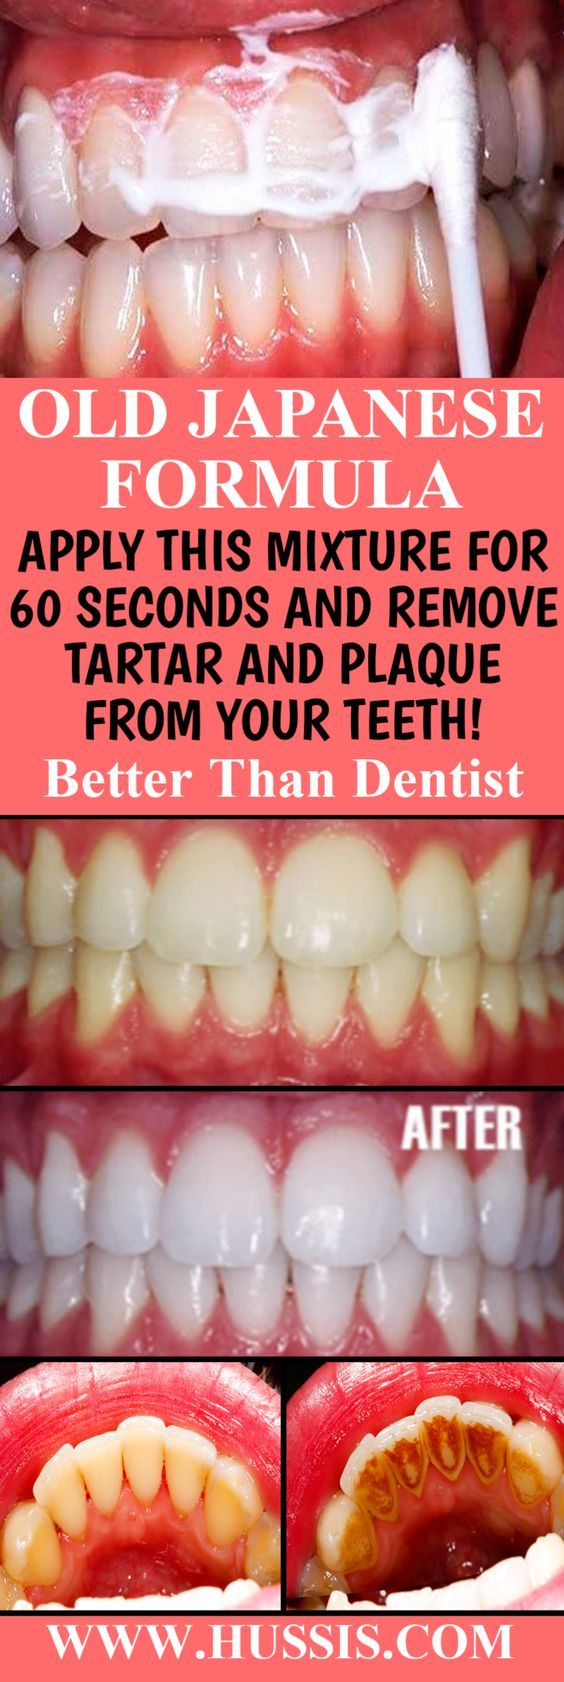 Old Japanese Formula Apply This Mixture For 60 Seconds And Remove Tartar And Plaque From Your Teeth Better Than Dentist Teeth Health Dental Health Nice Teeth